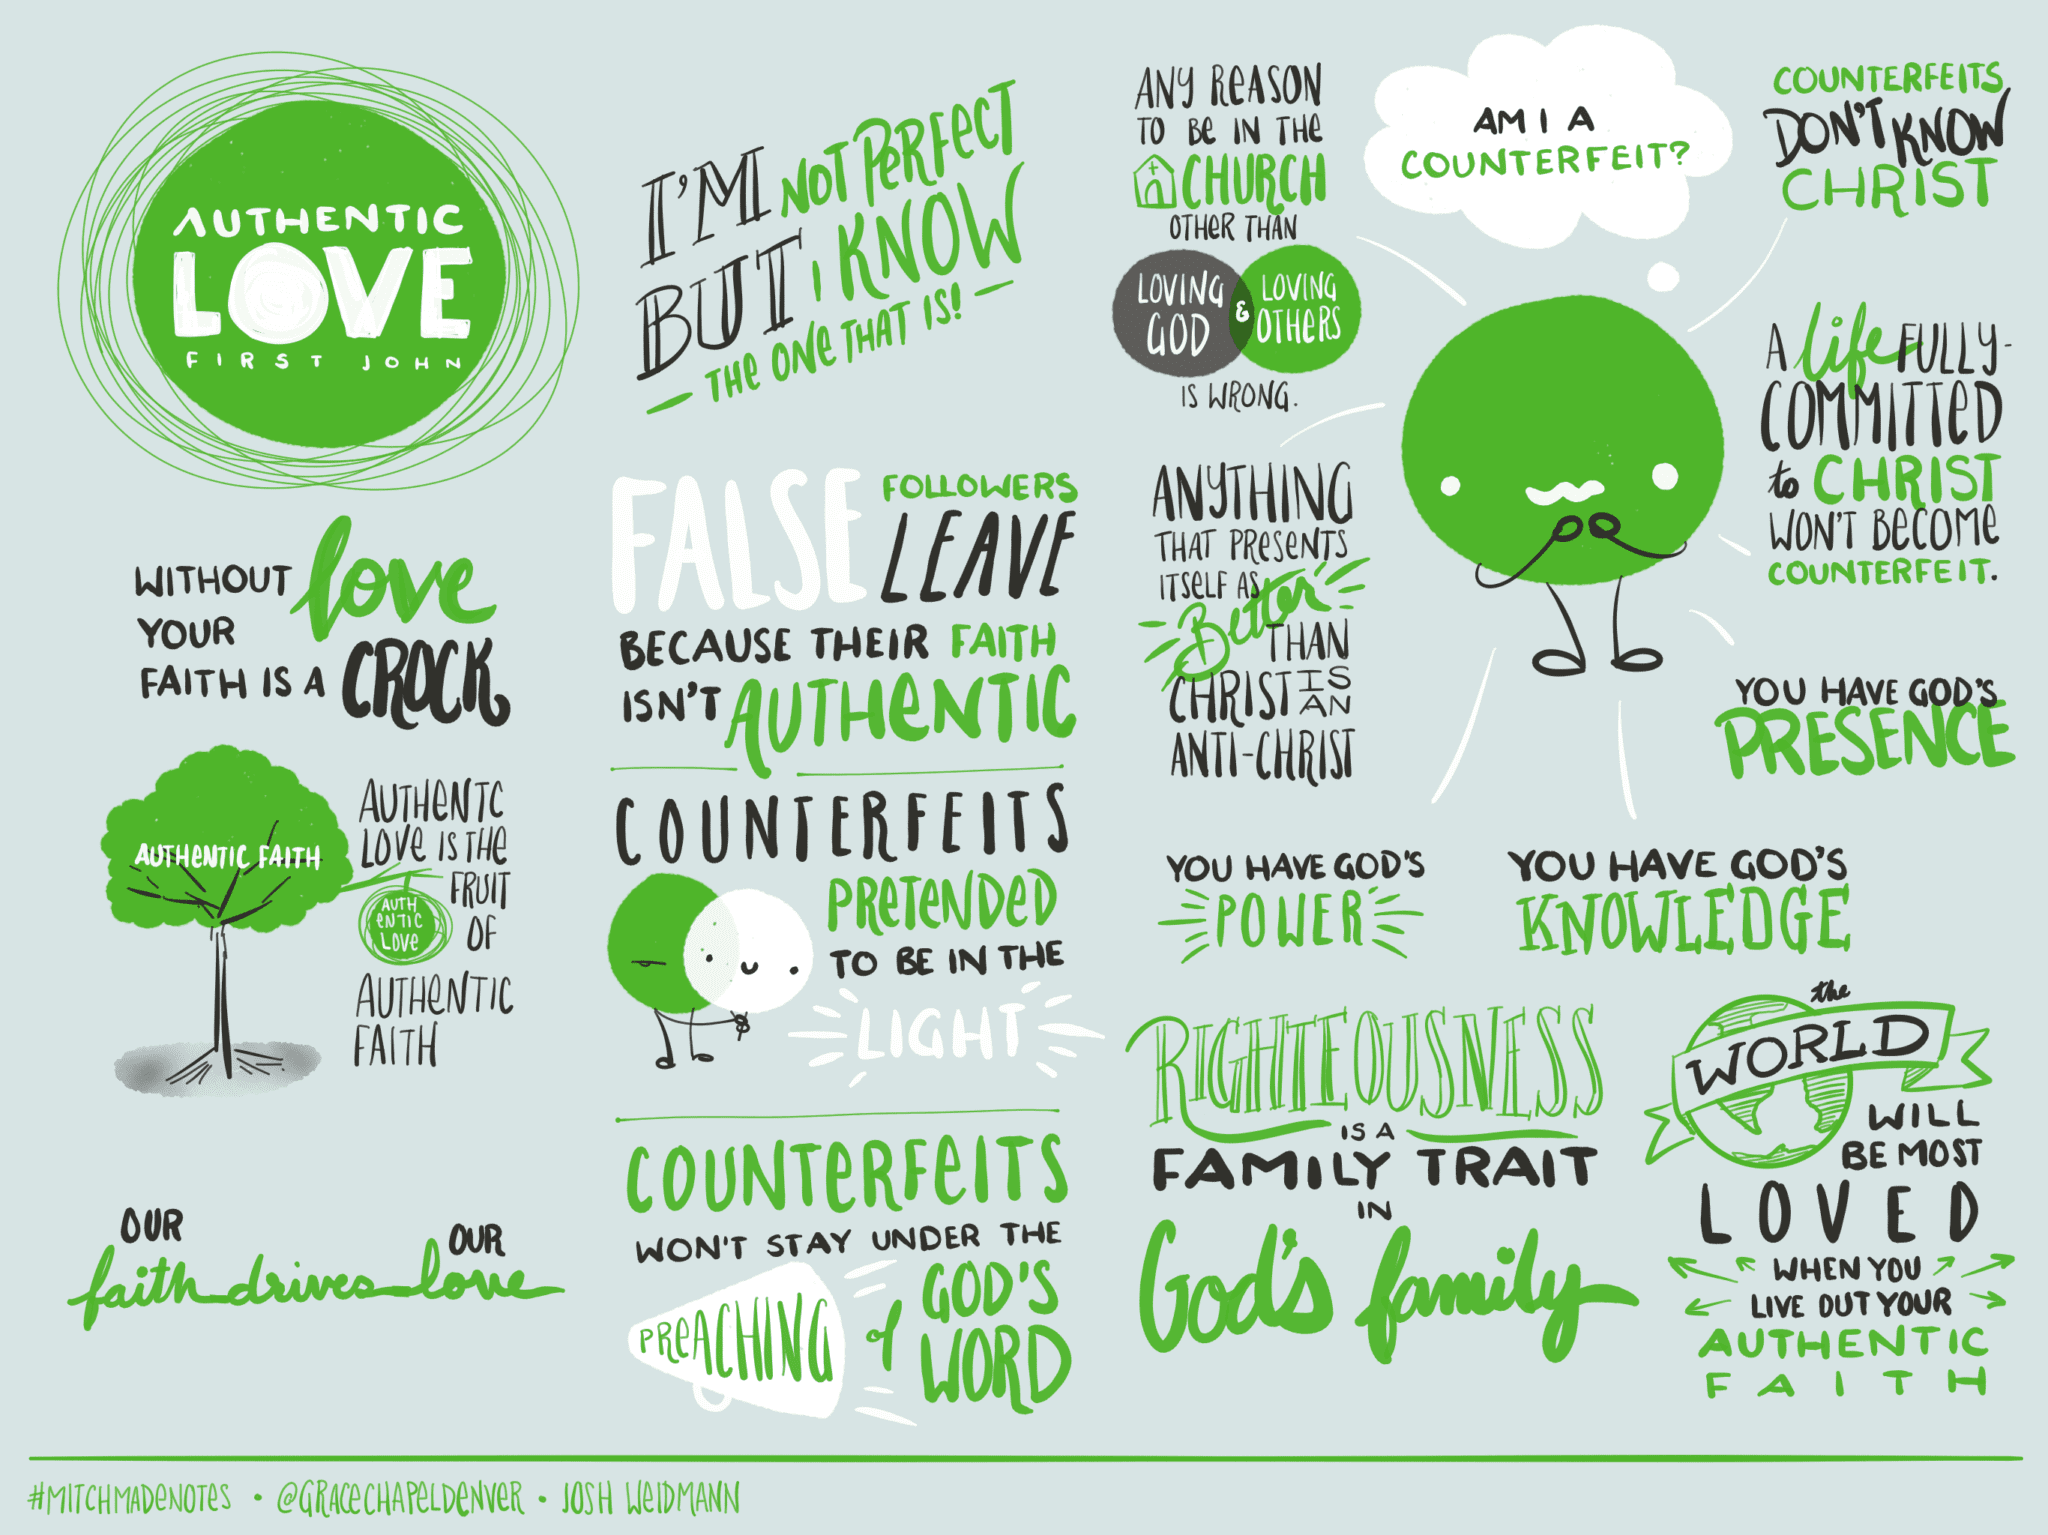 If you like these notes, right-click to download and save them.